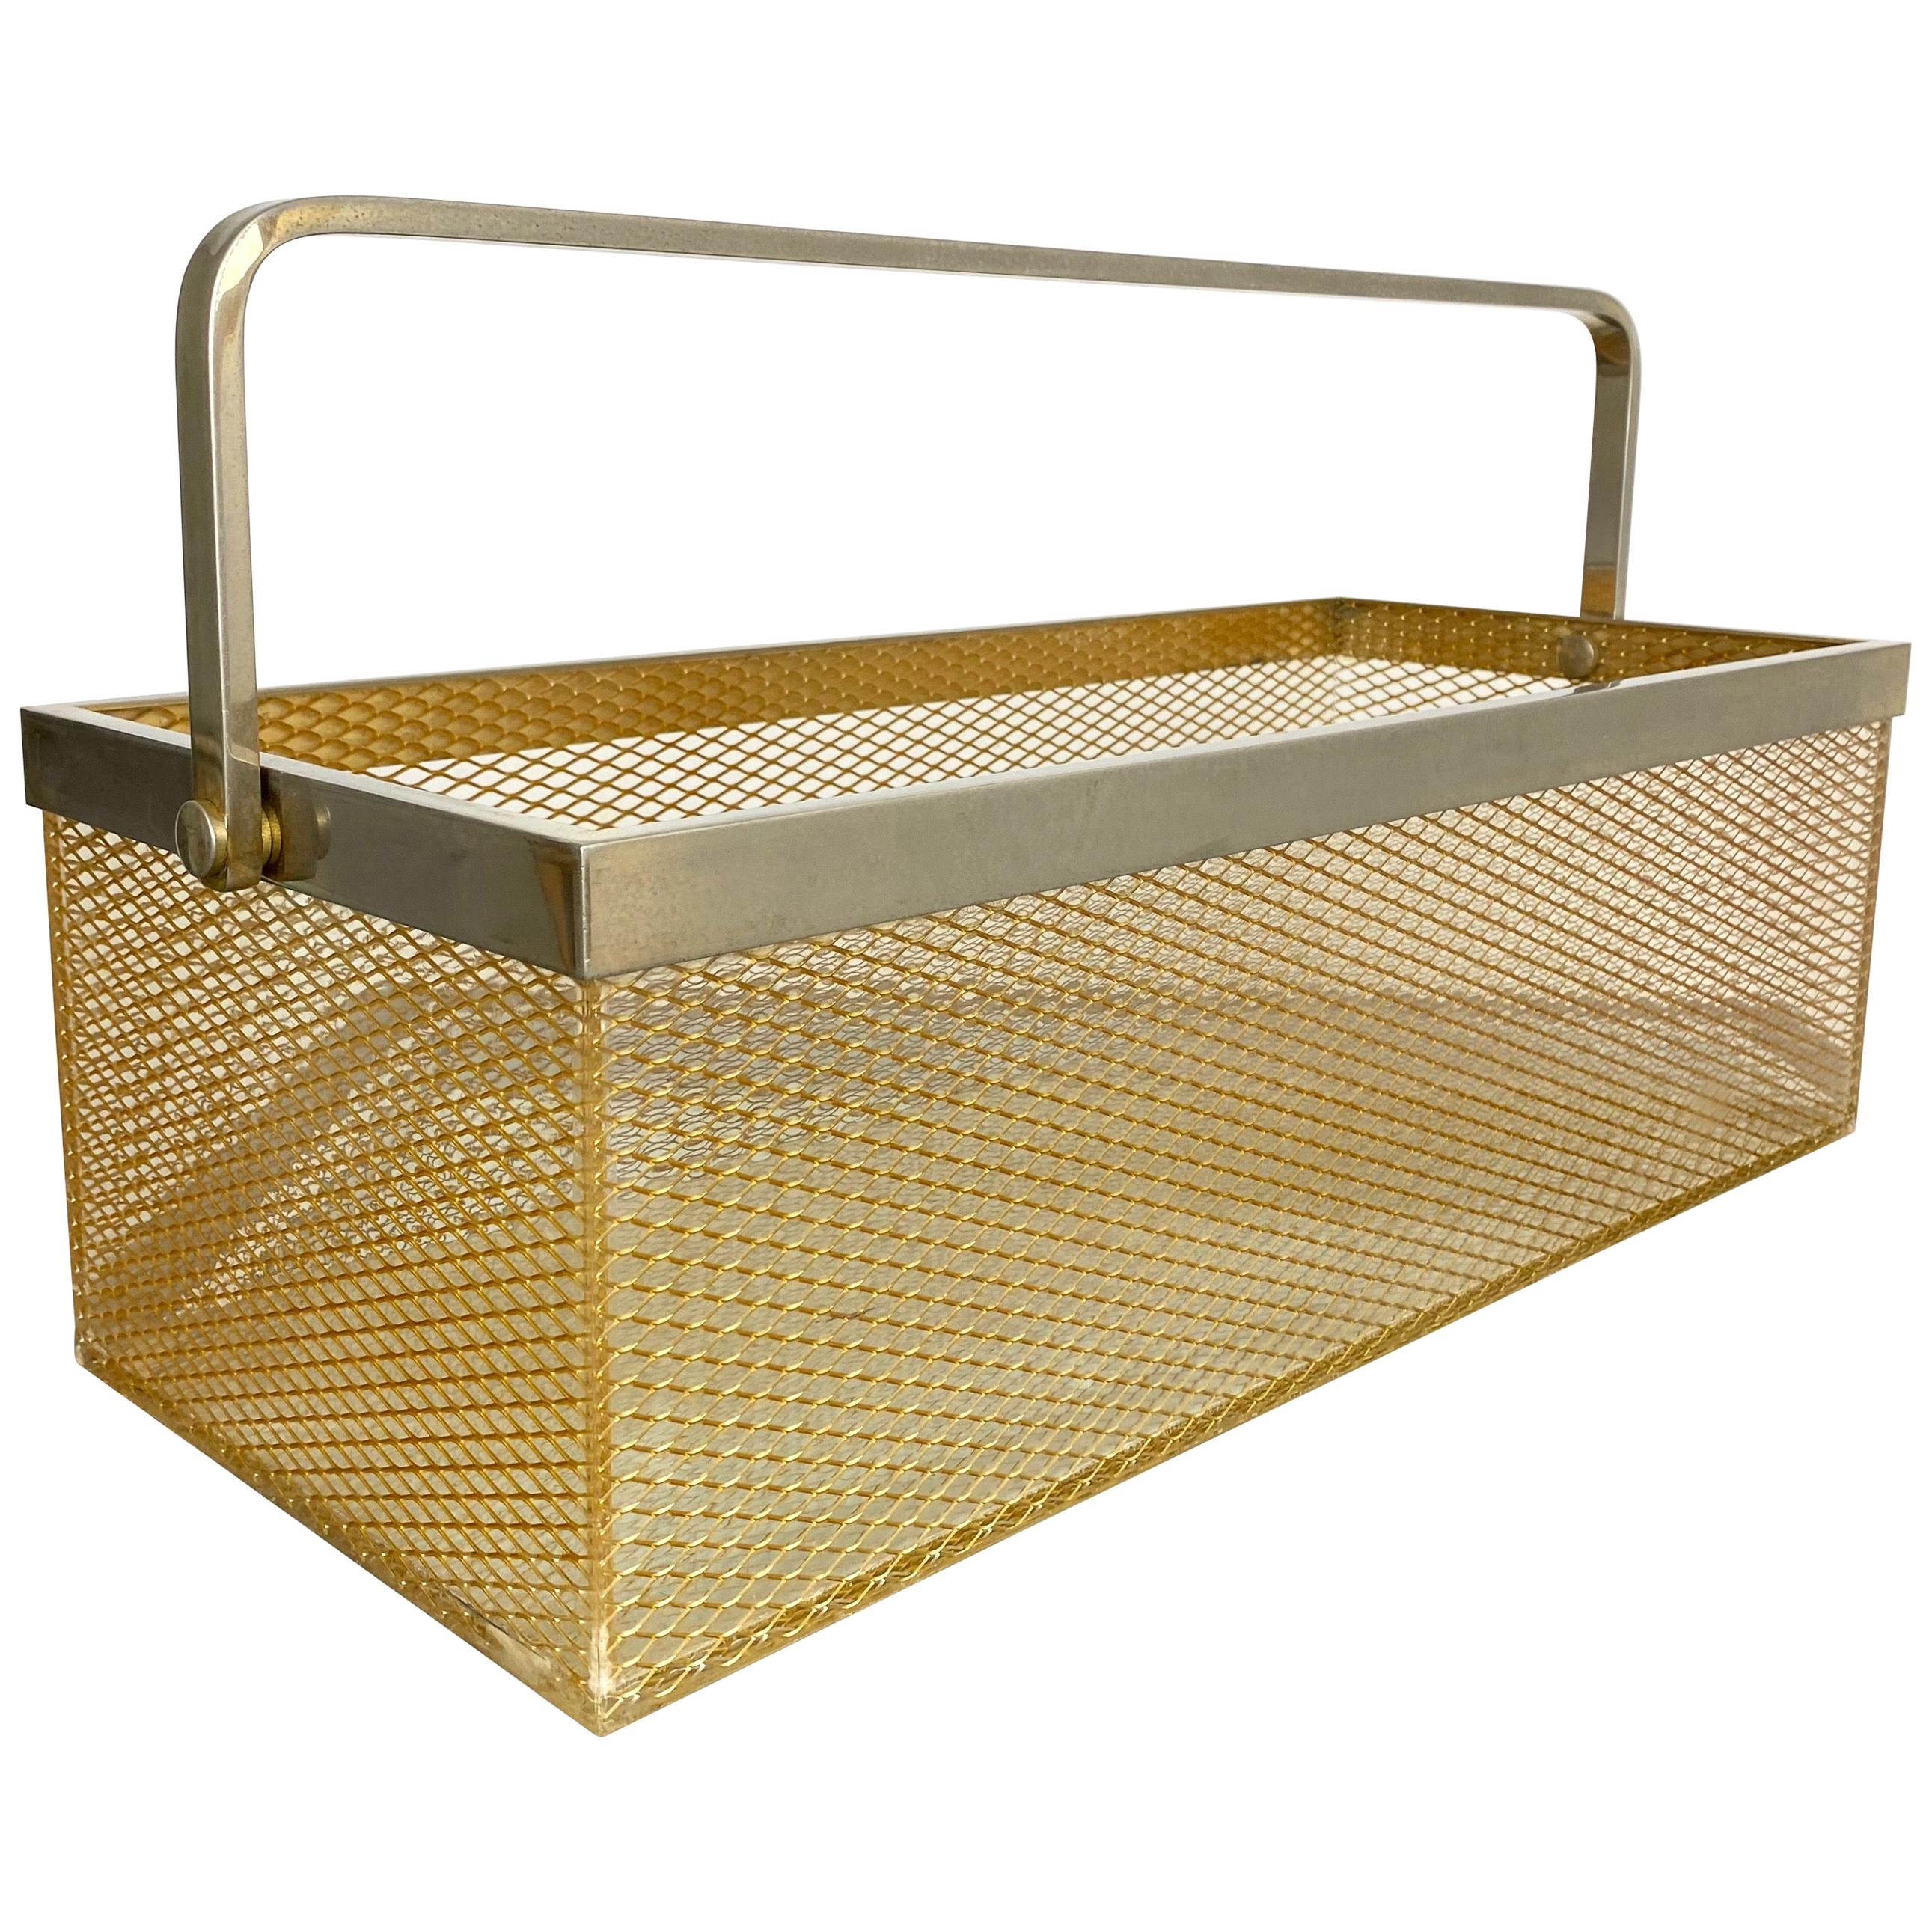 Magazine Holder Rack in Nickel and Netting Lucite, Italy, 1970s